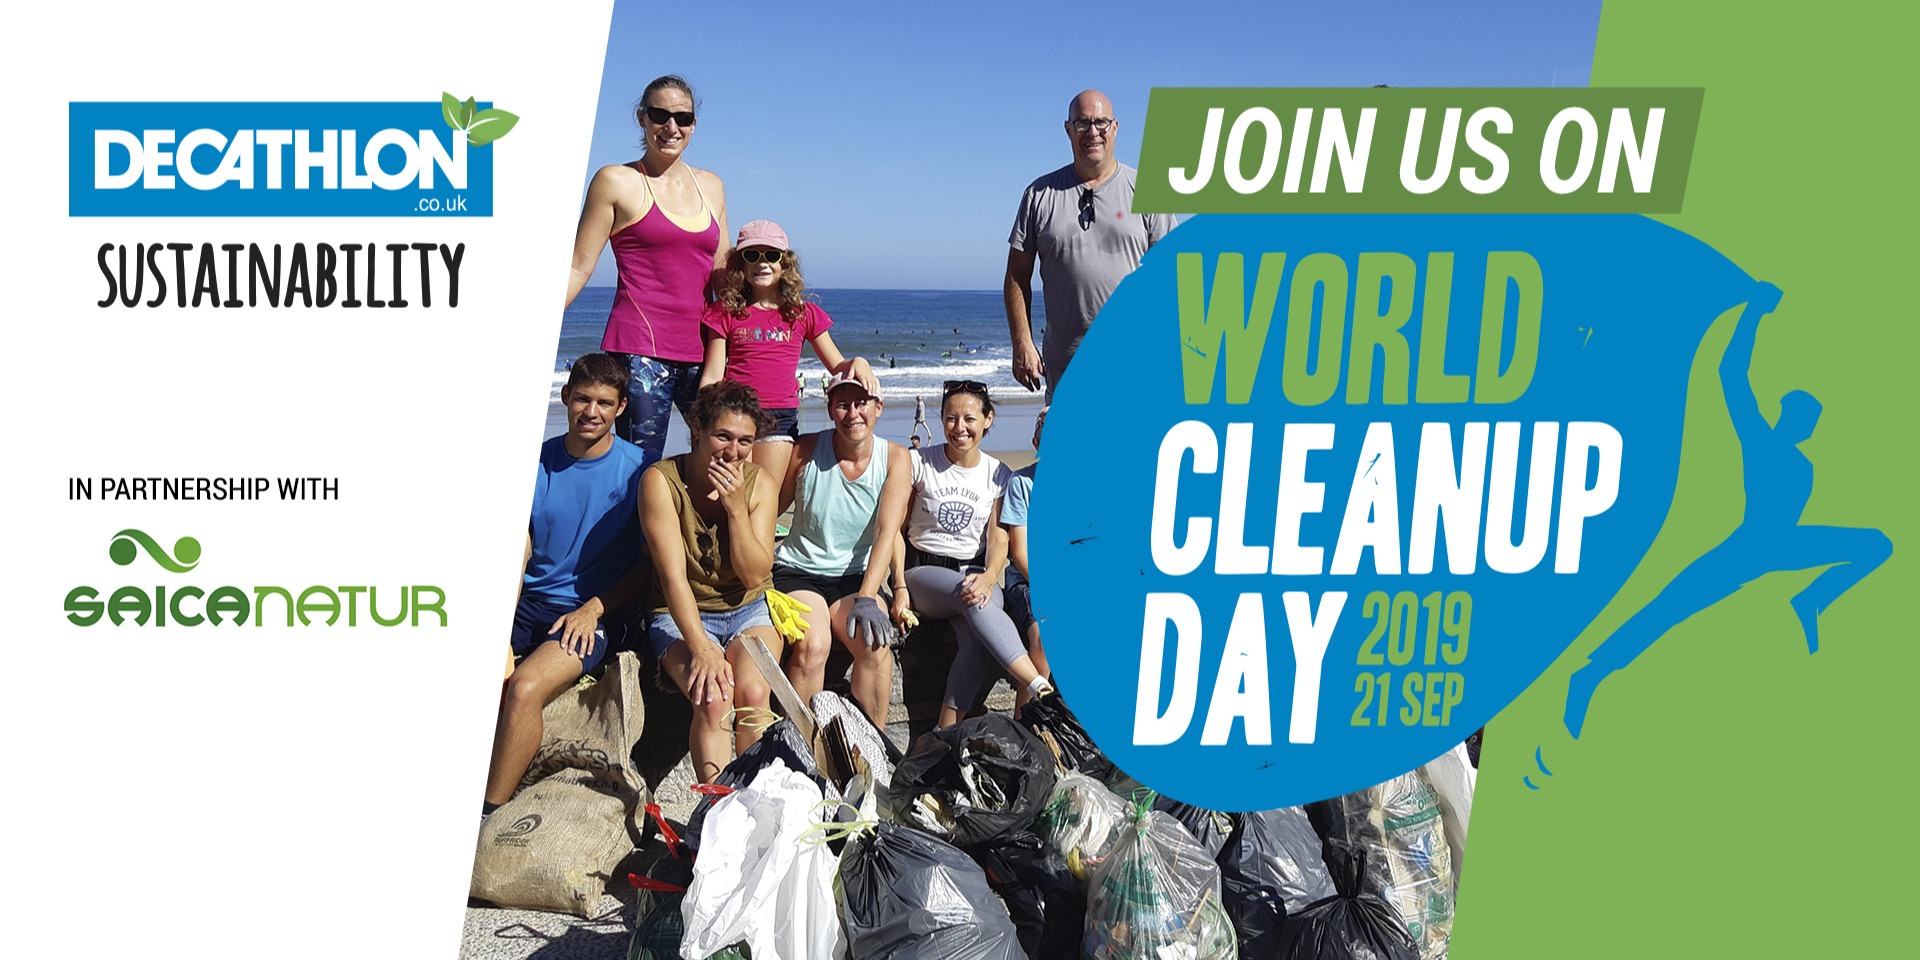 World clean up day - huyton